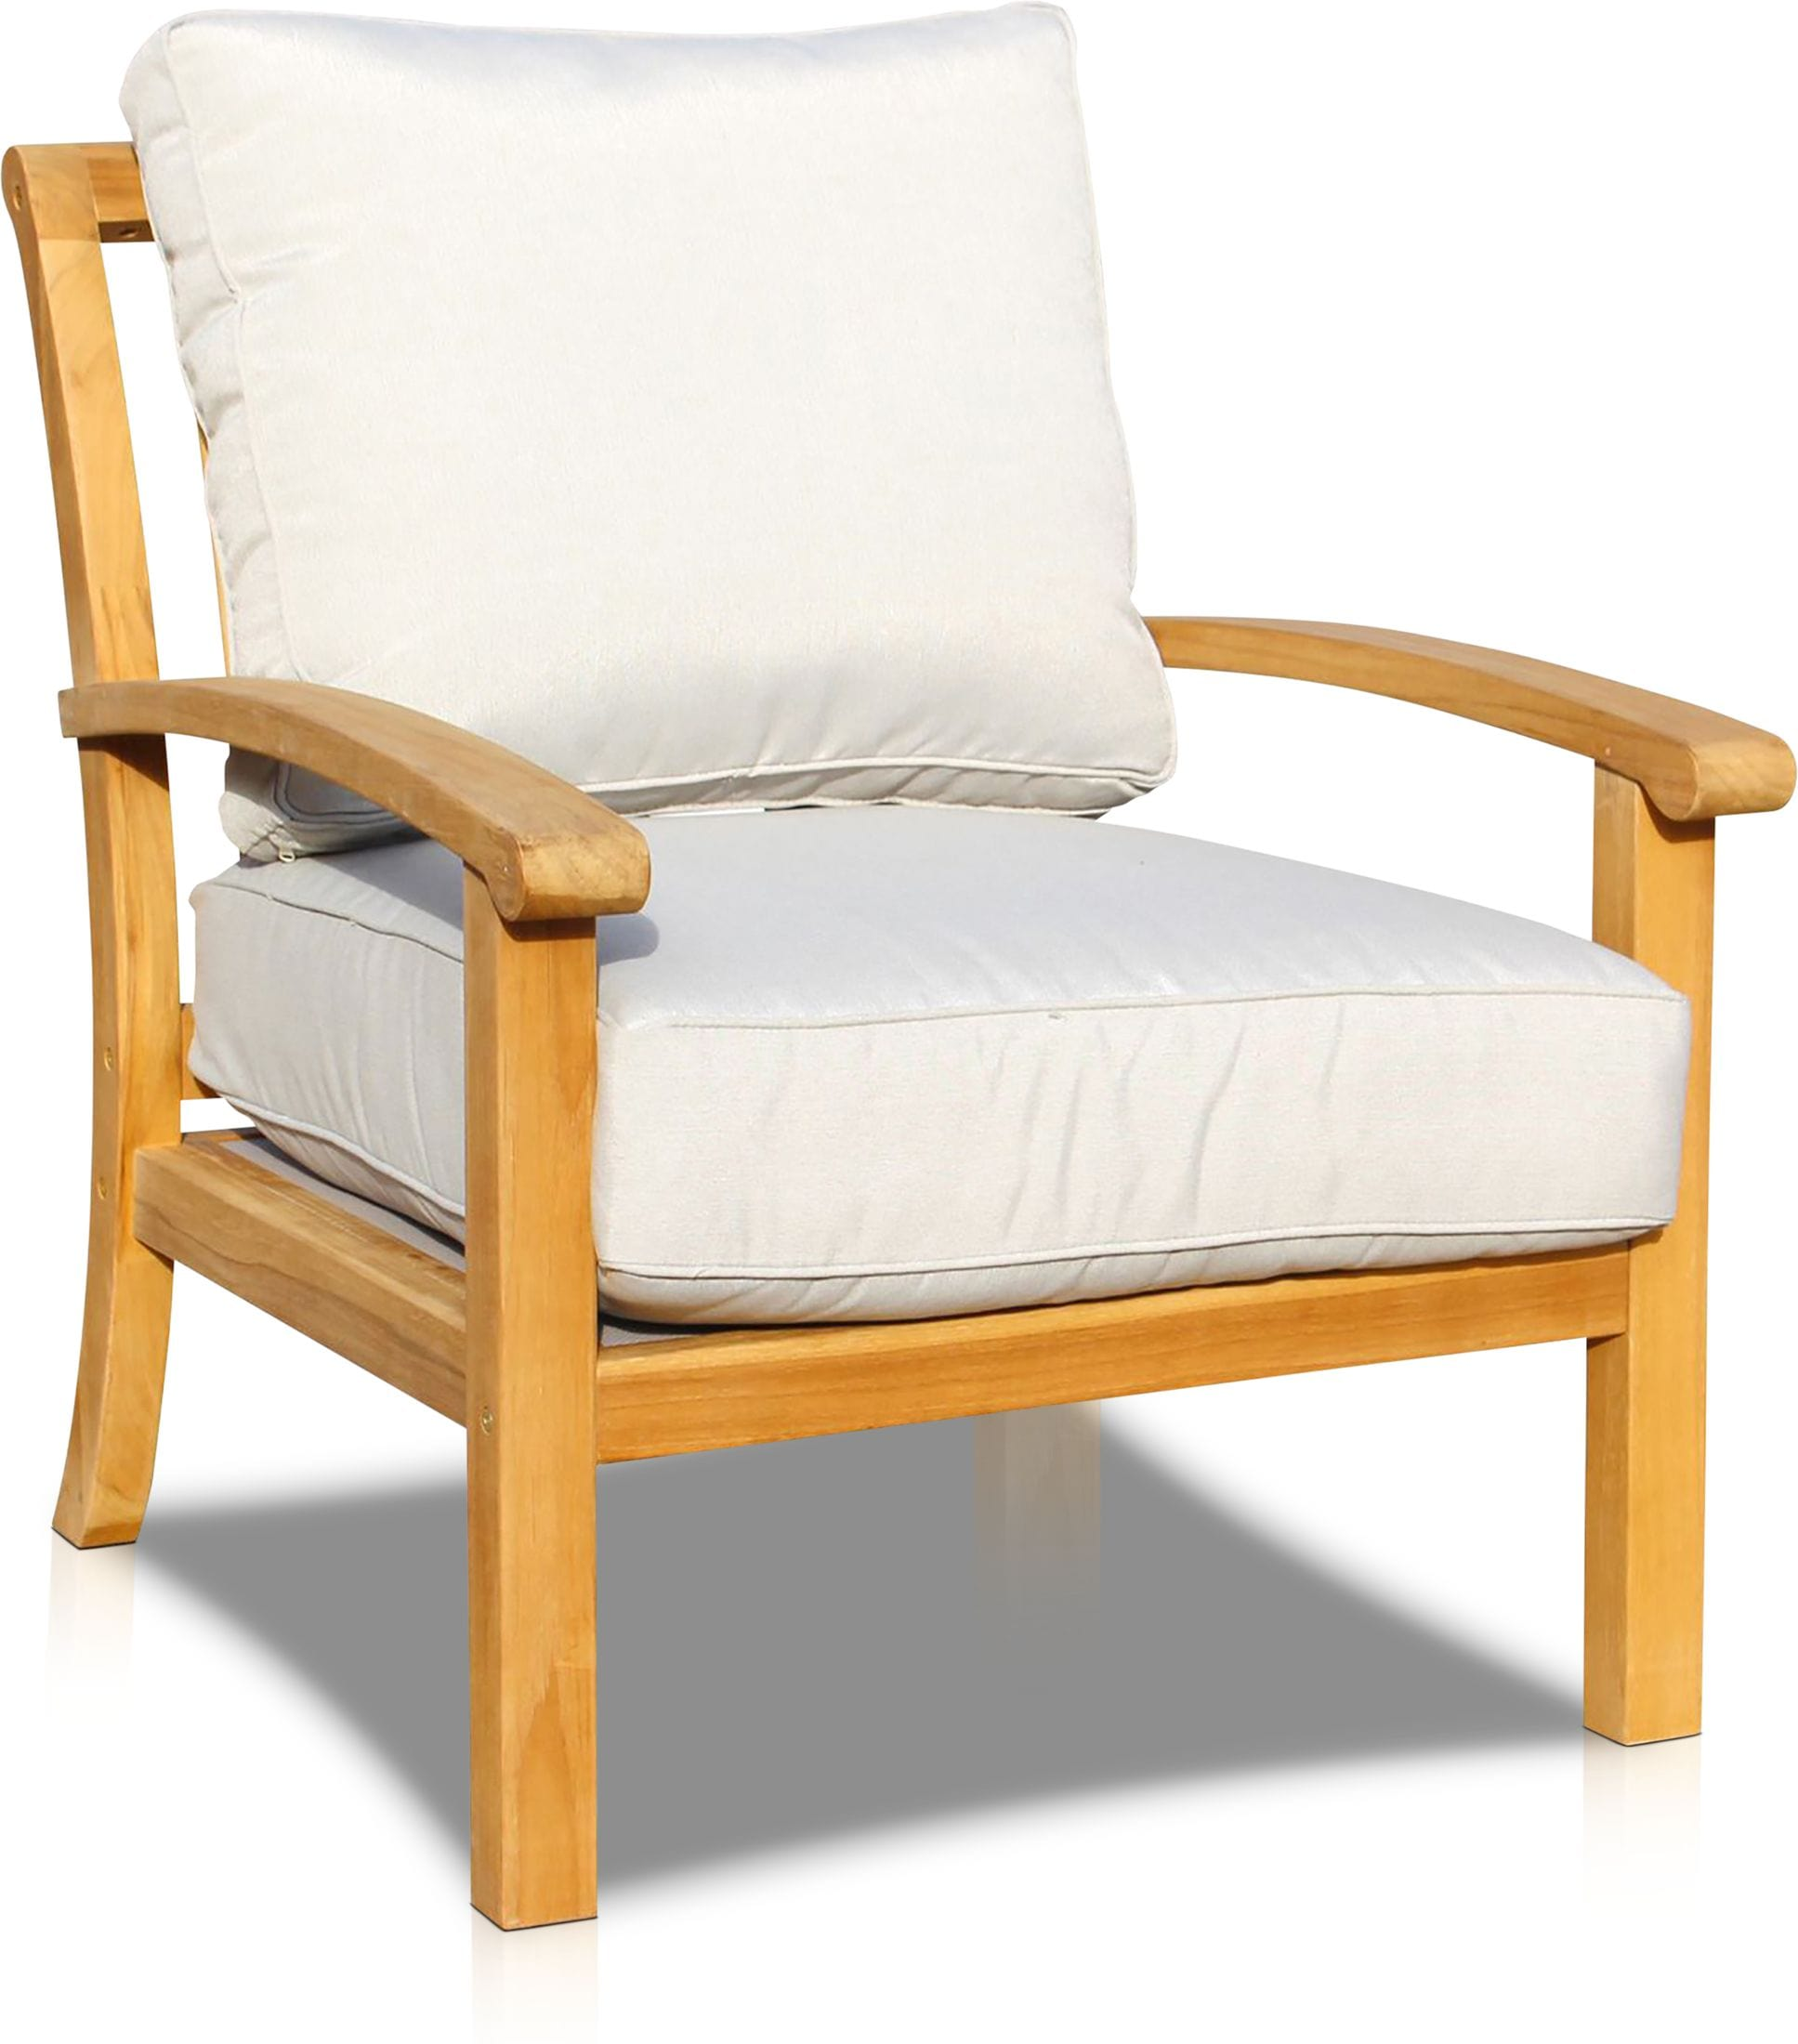 Outdoor Furniture - Bonita Outdoor Chair